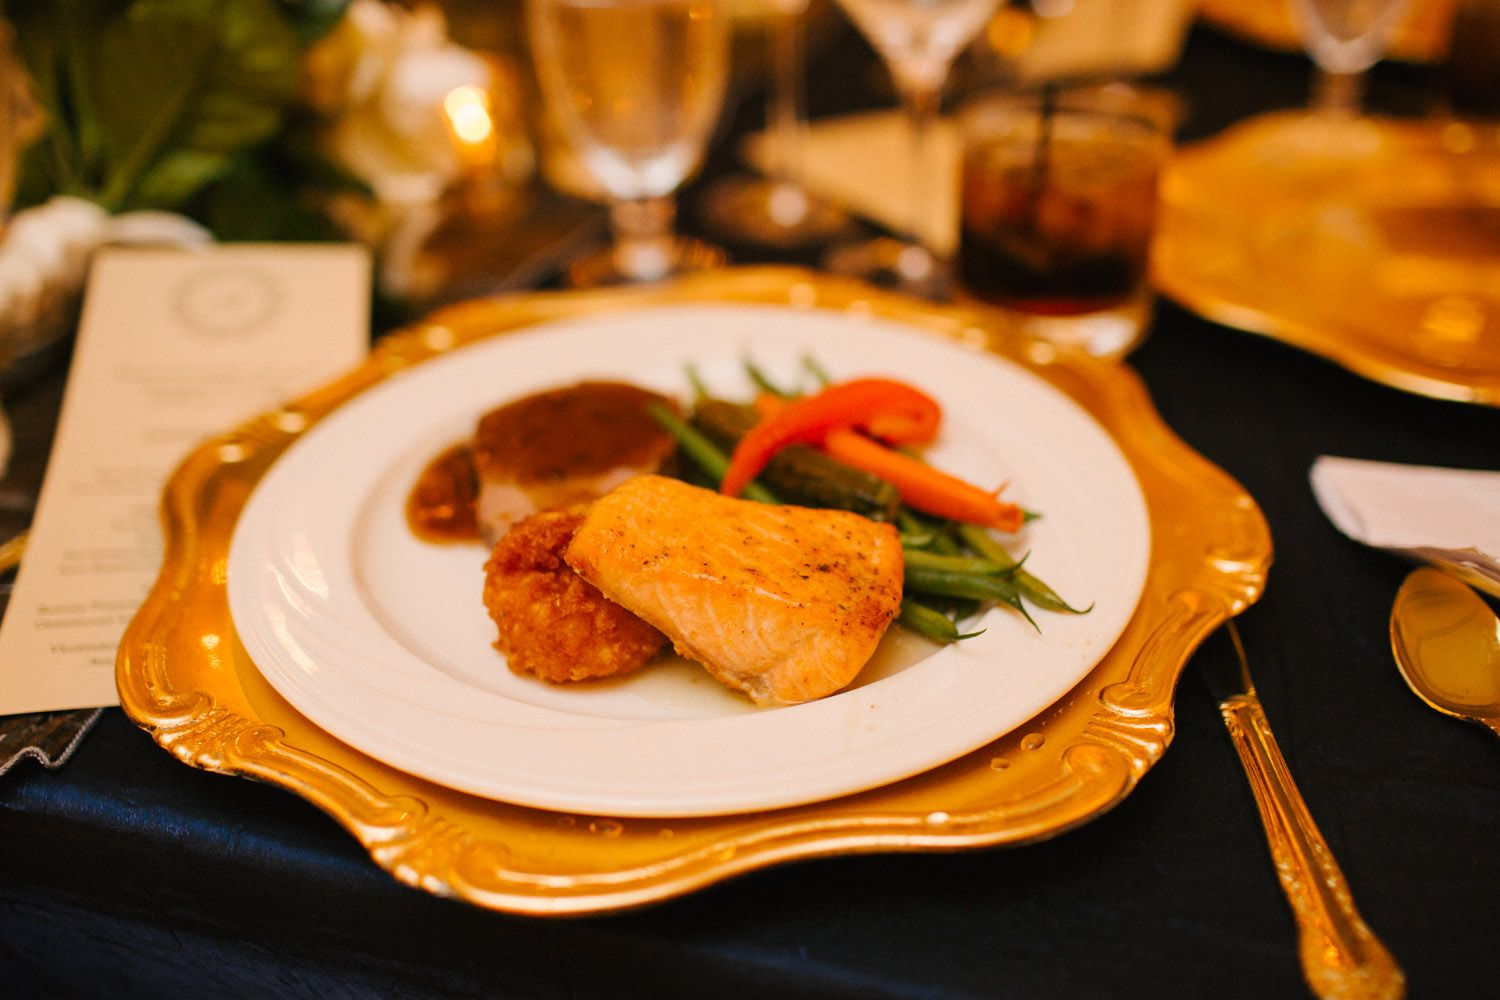 The galt house offers customized catering contact anna jarvis to